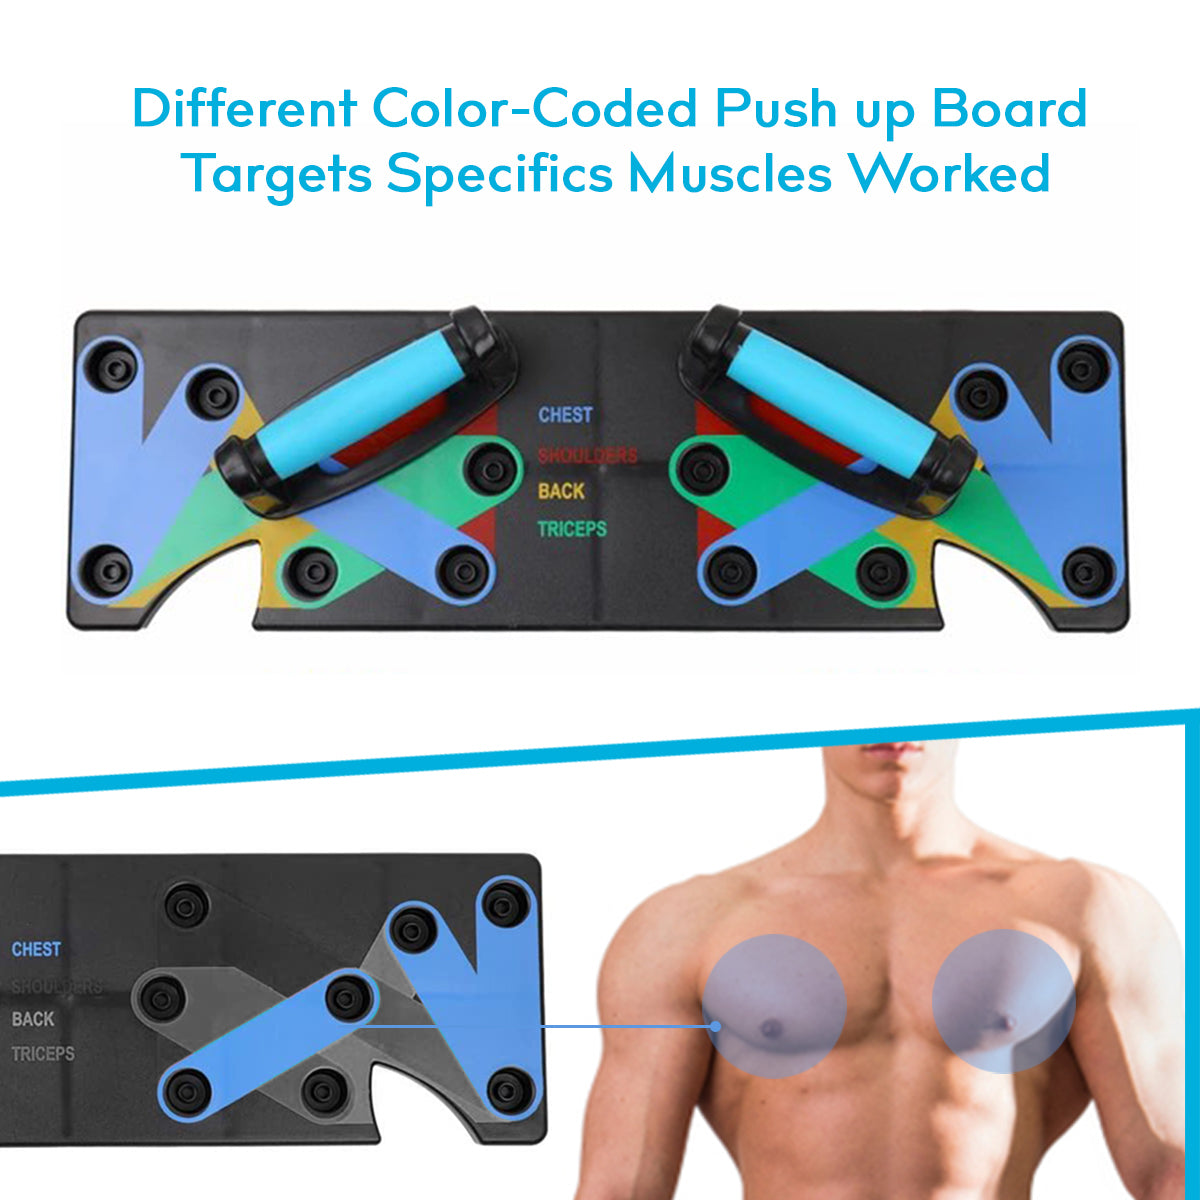 MULTI-FUNCTION PUSH UP BOARD - PushUpNity